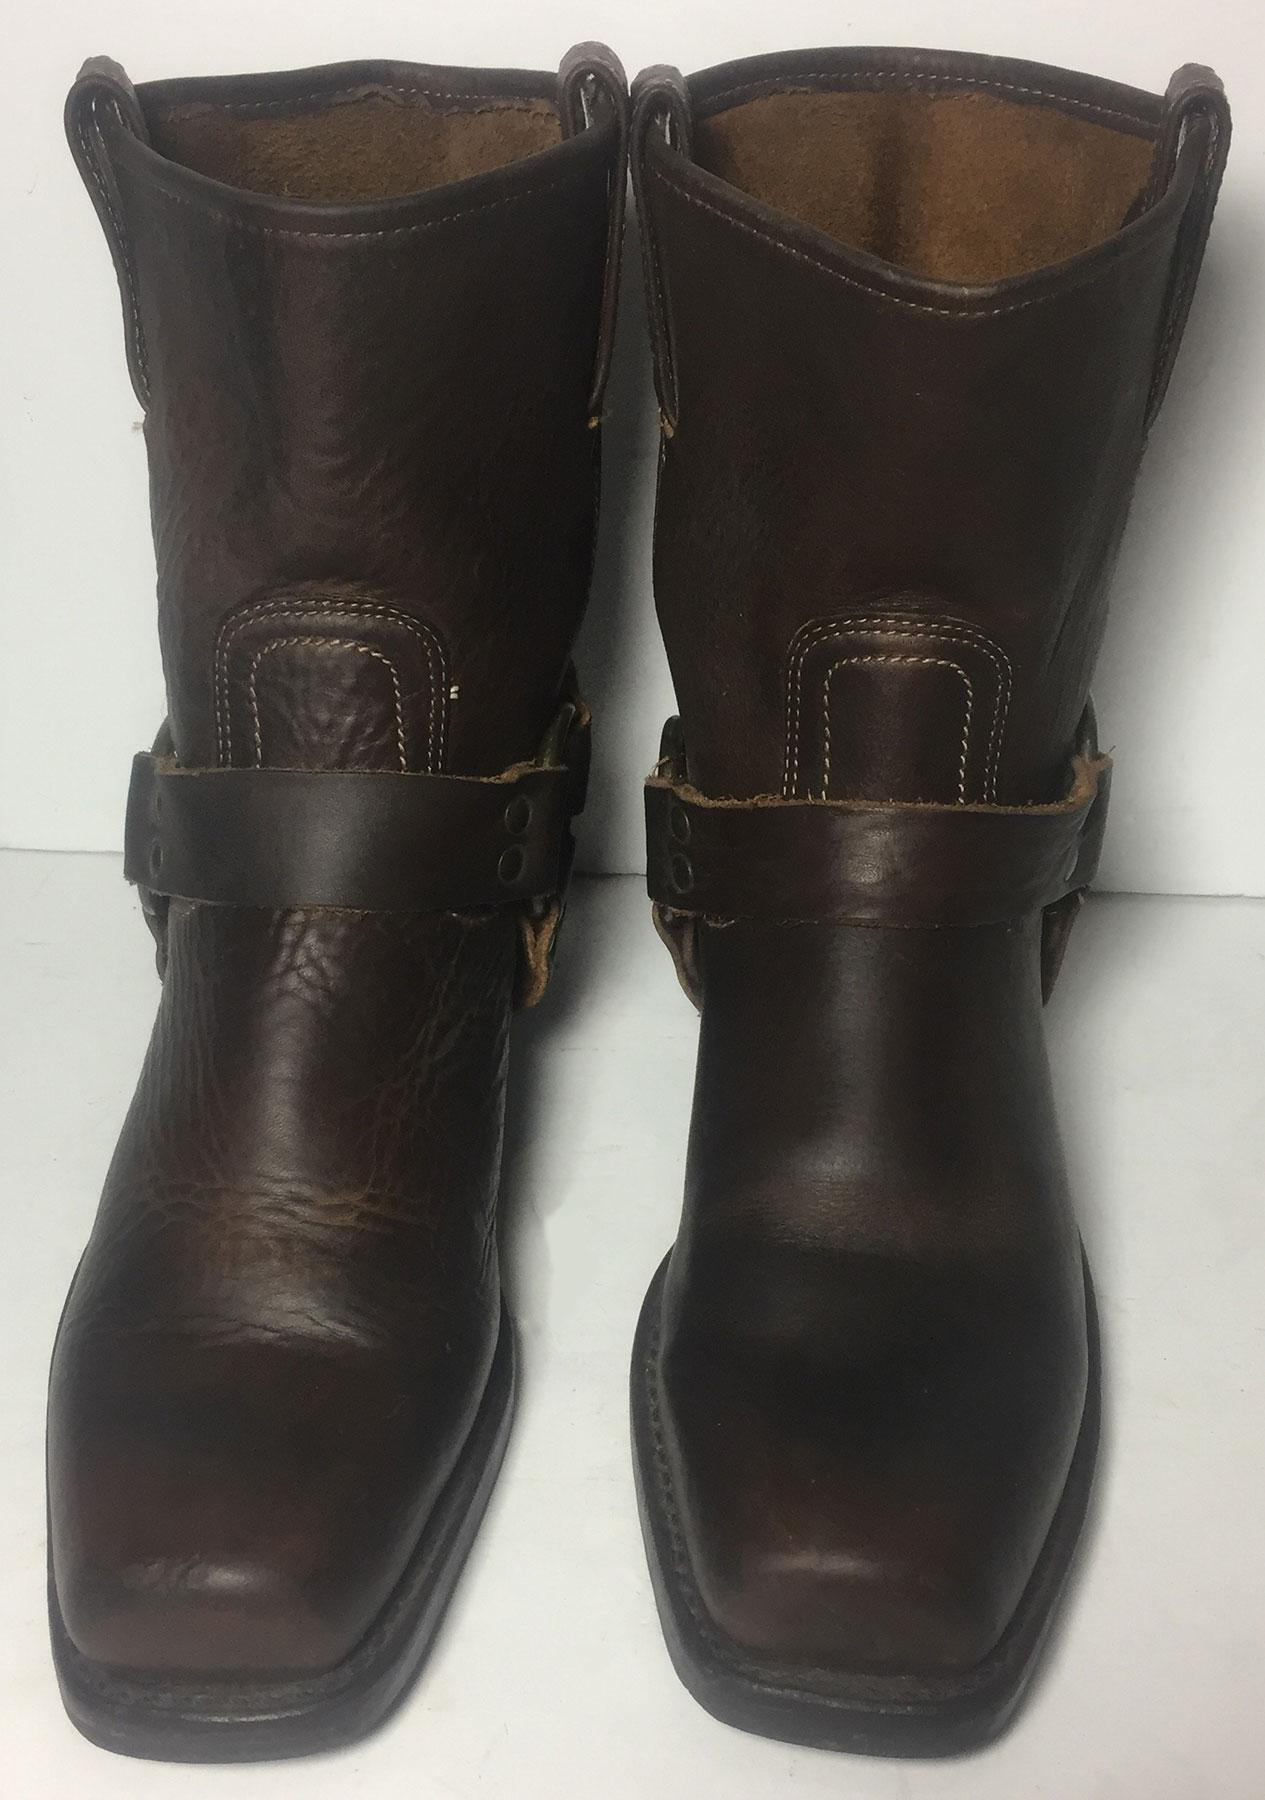 c53d1b3fe605 ... Frye Brown Brown Brown 77455 Harness 8 R Pull On Motorcycle Women s  Boots Booties Size ...